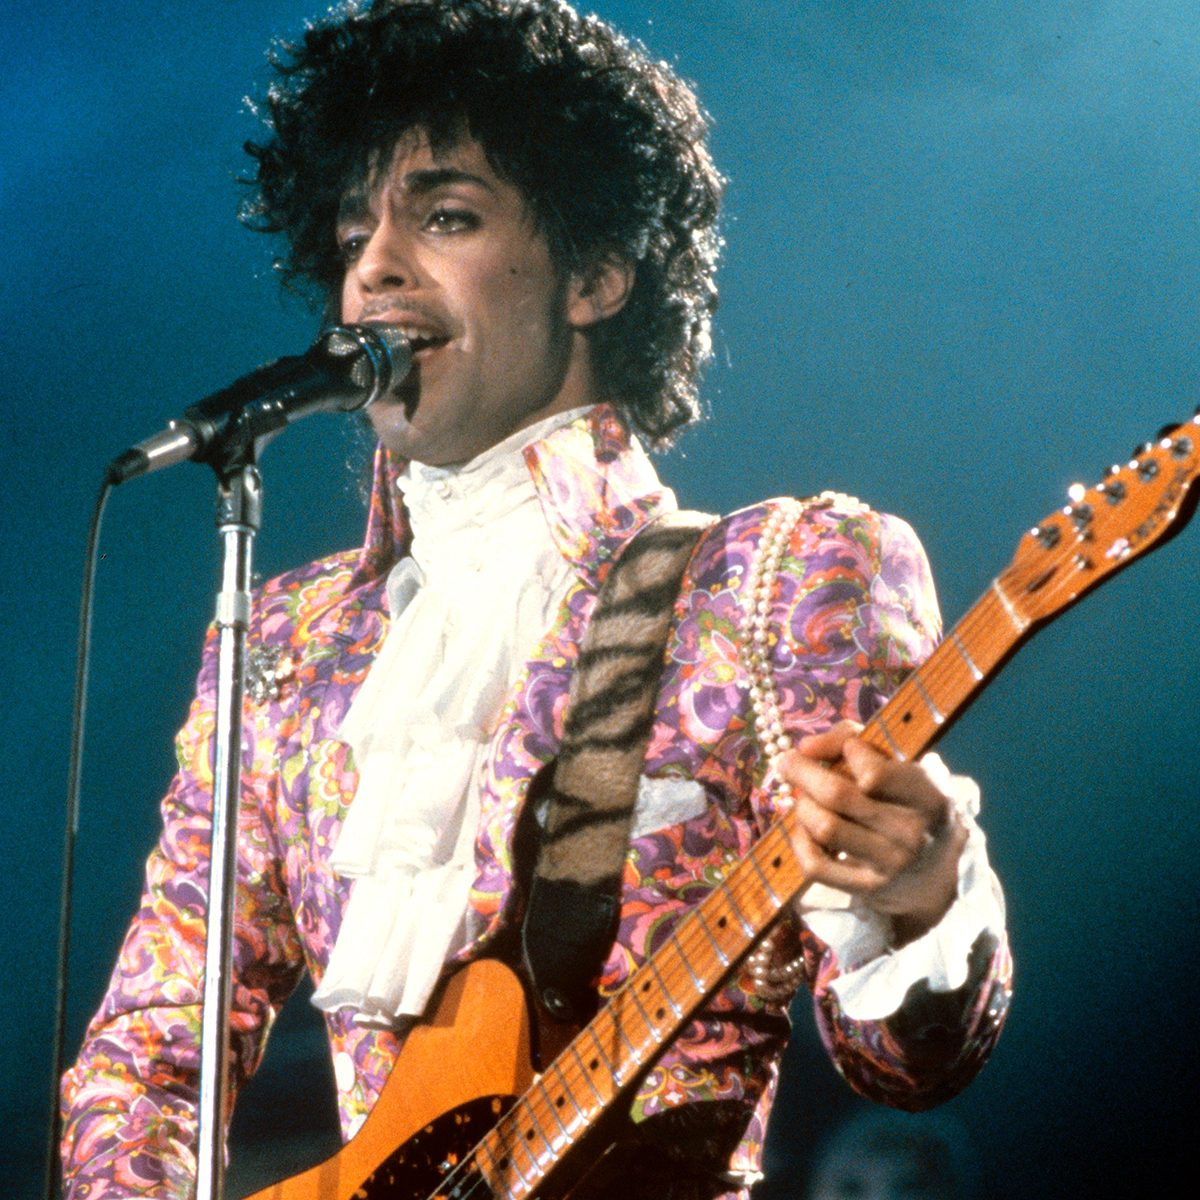 Mandatory Credit: Photo by Globe Photos/Shutterstock (115372a) Prince PRINCE IN CONCERT AT NASSAU COLISEUM, NEW YORK, AMERICA - 1985